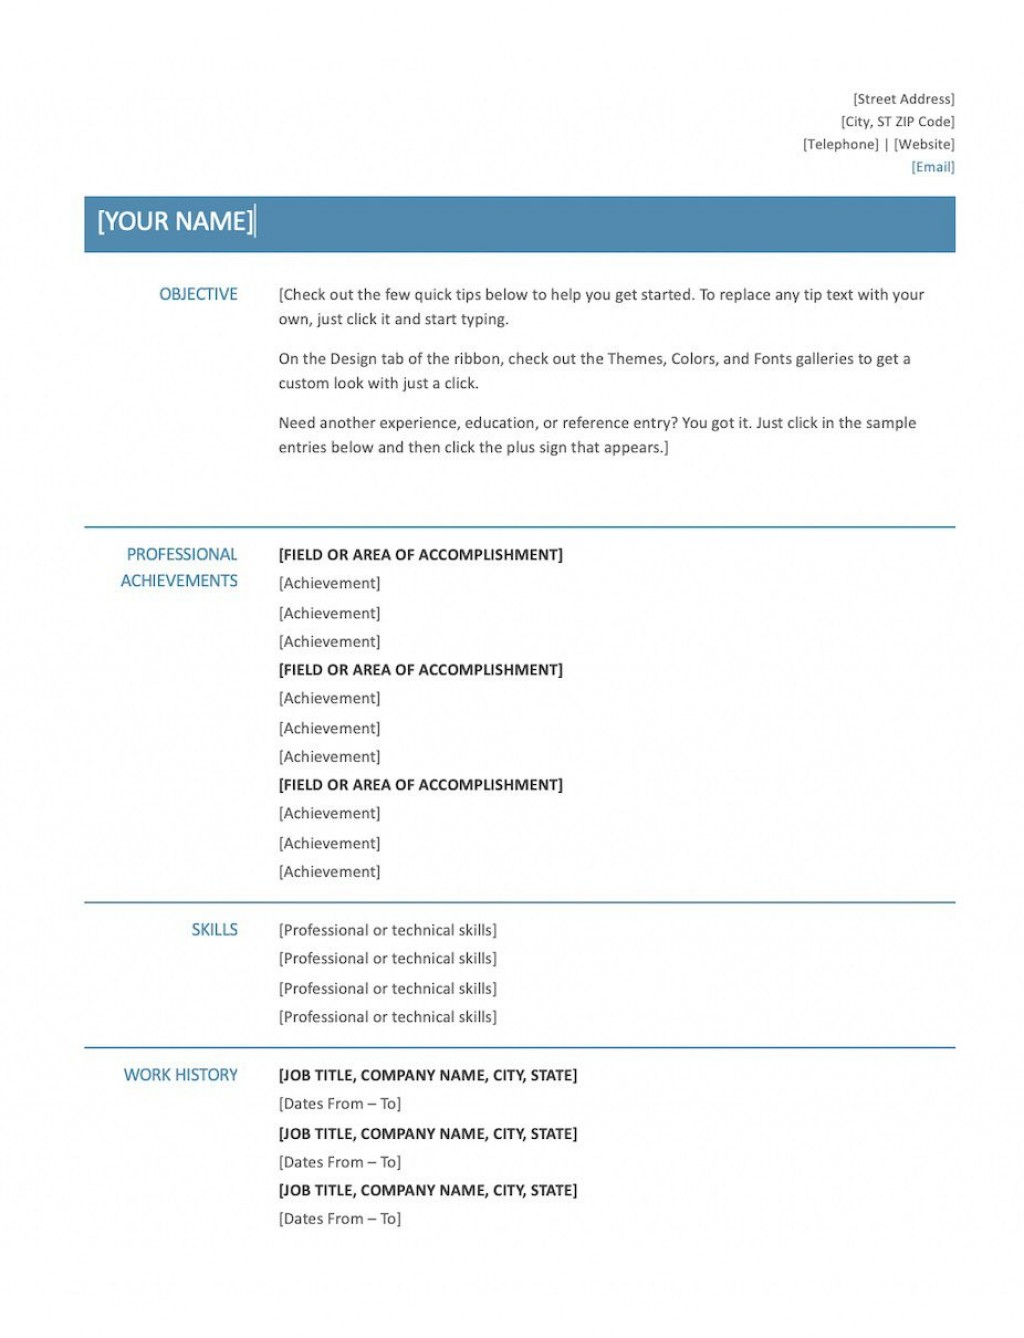 010 Rare Basic Resume Template Word Idea  Free Download 2020Large